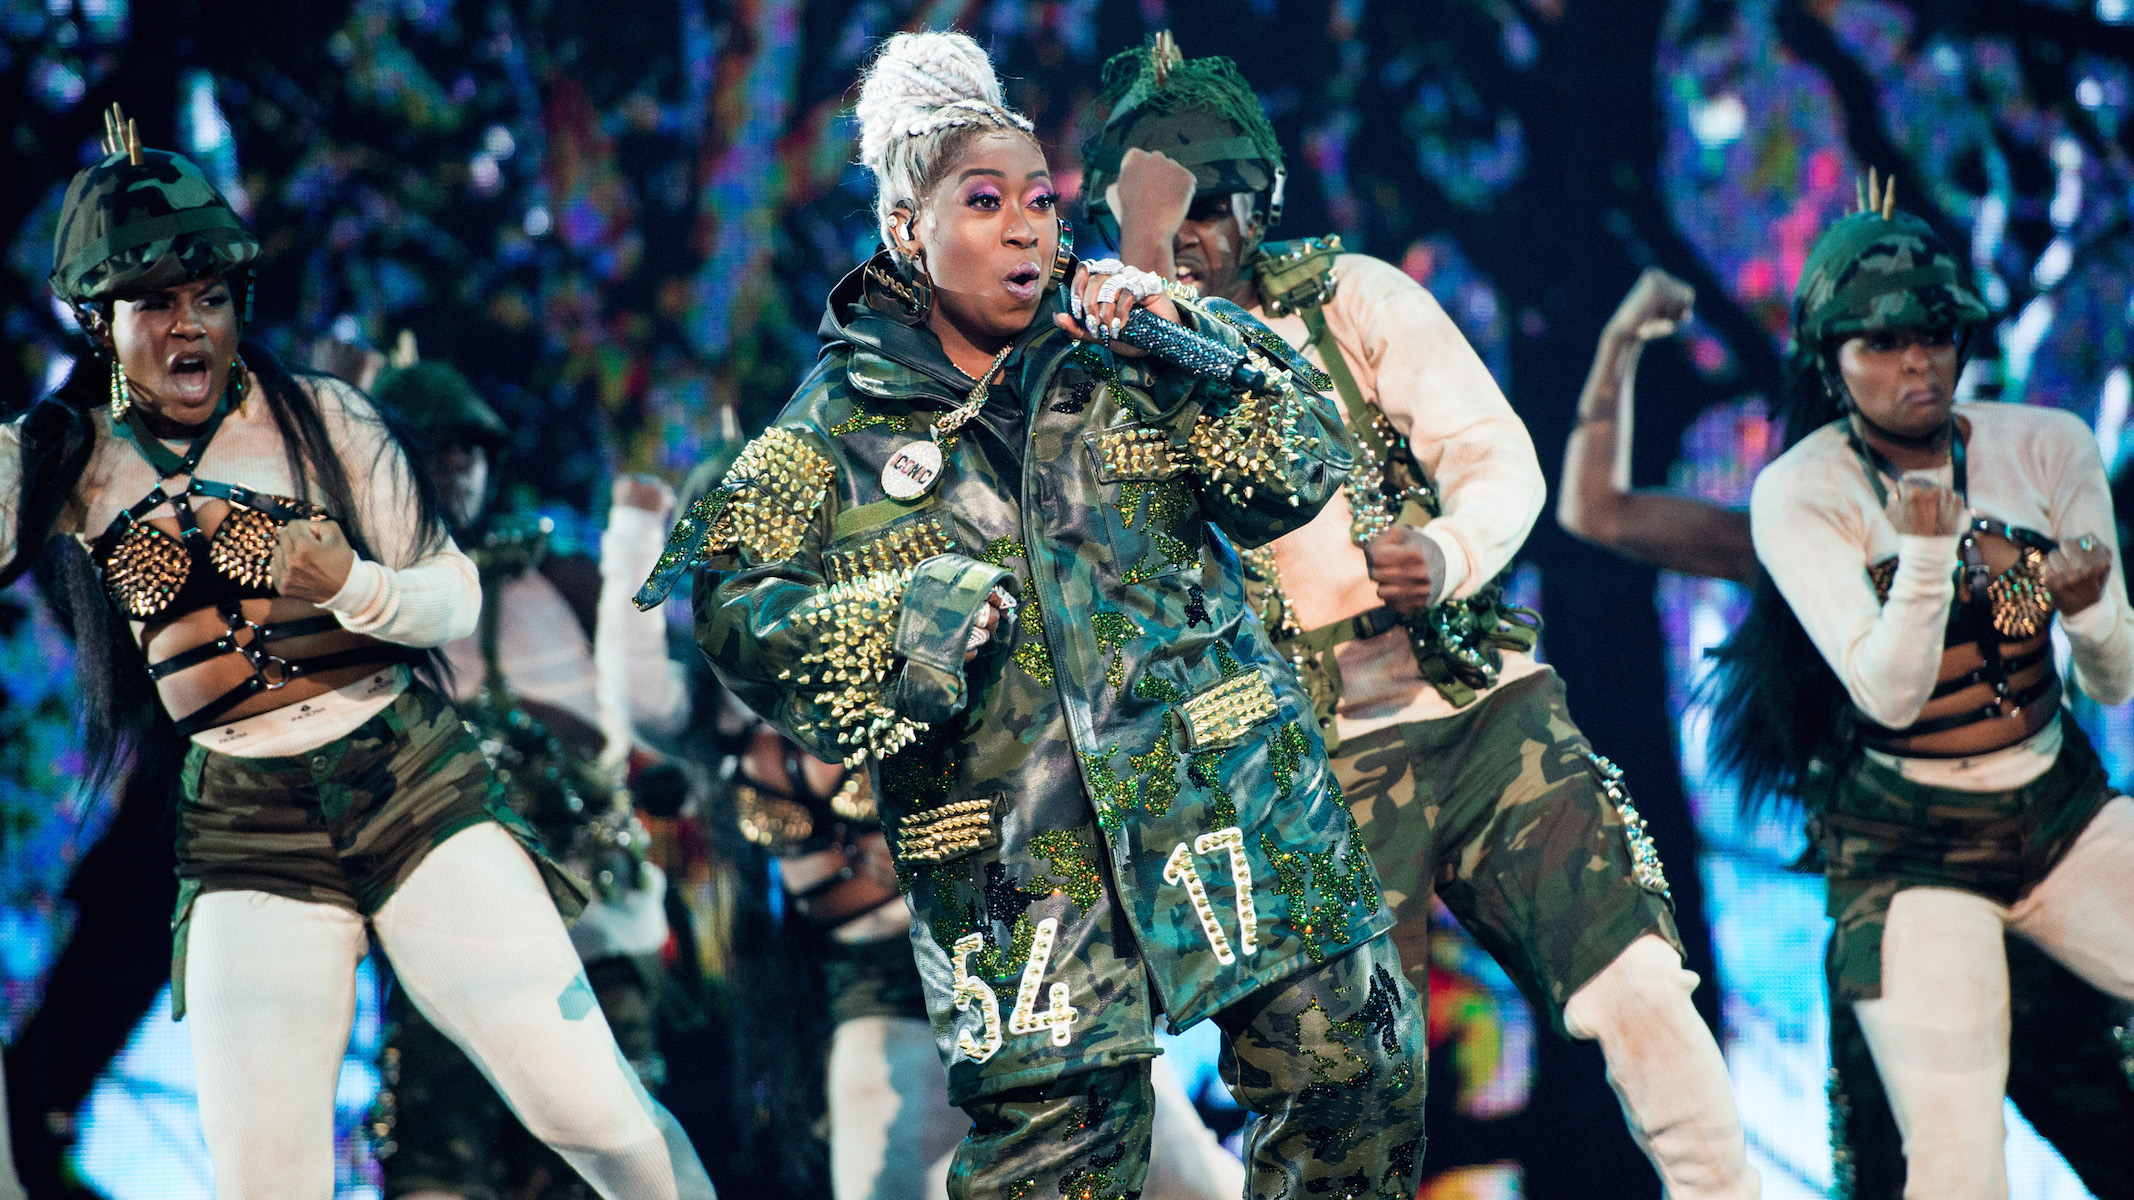 Missy Elliott, Normani, Lizzo & More: The Best of the 2019 VMAs Performances